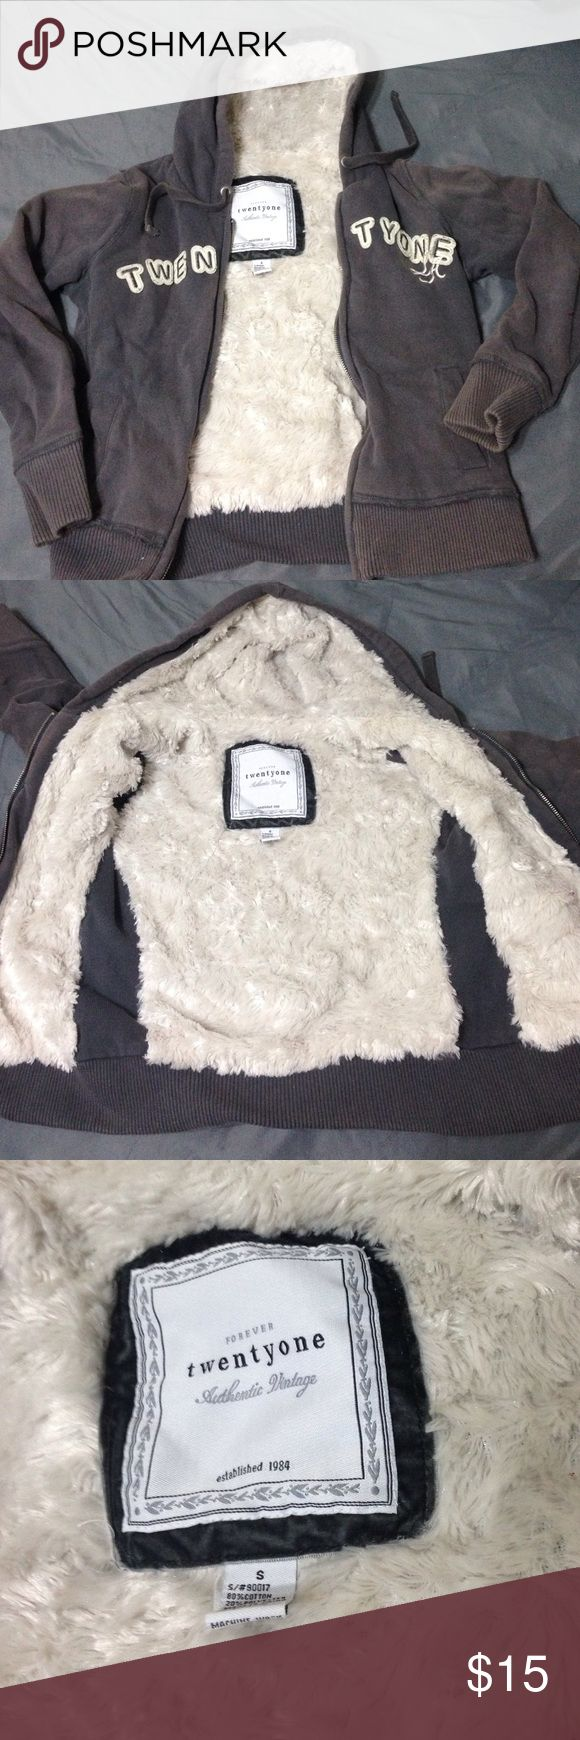 Faux fur lined forever 21 grey zip up jacket Super comfy and super cozy faux fur lined jacket. Good condition. Sleeves are slightly faded Forever 21 Jackets & Coats